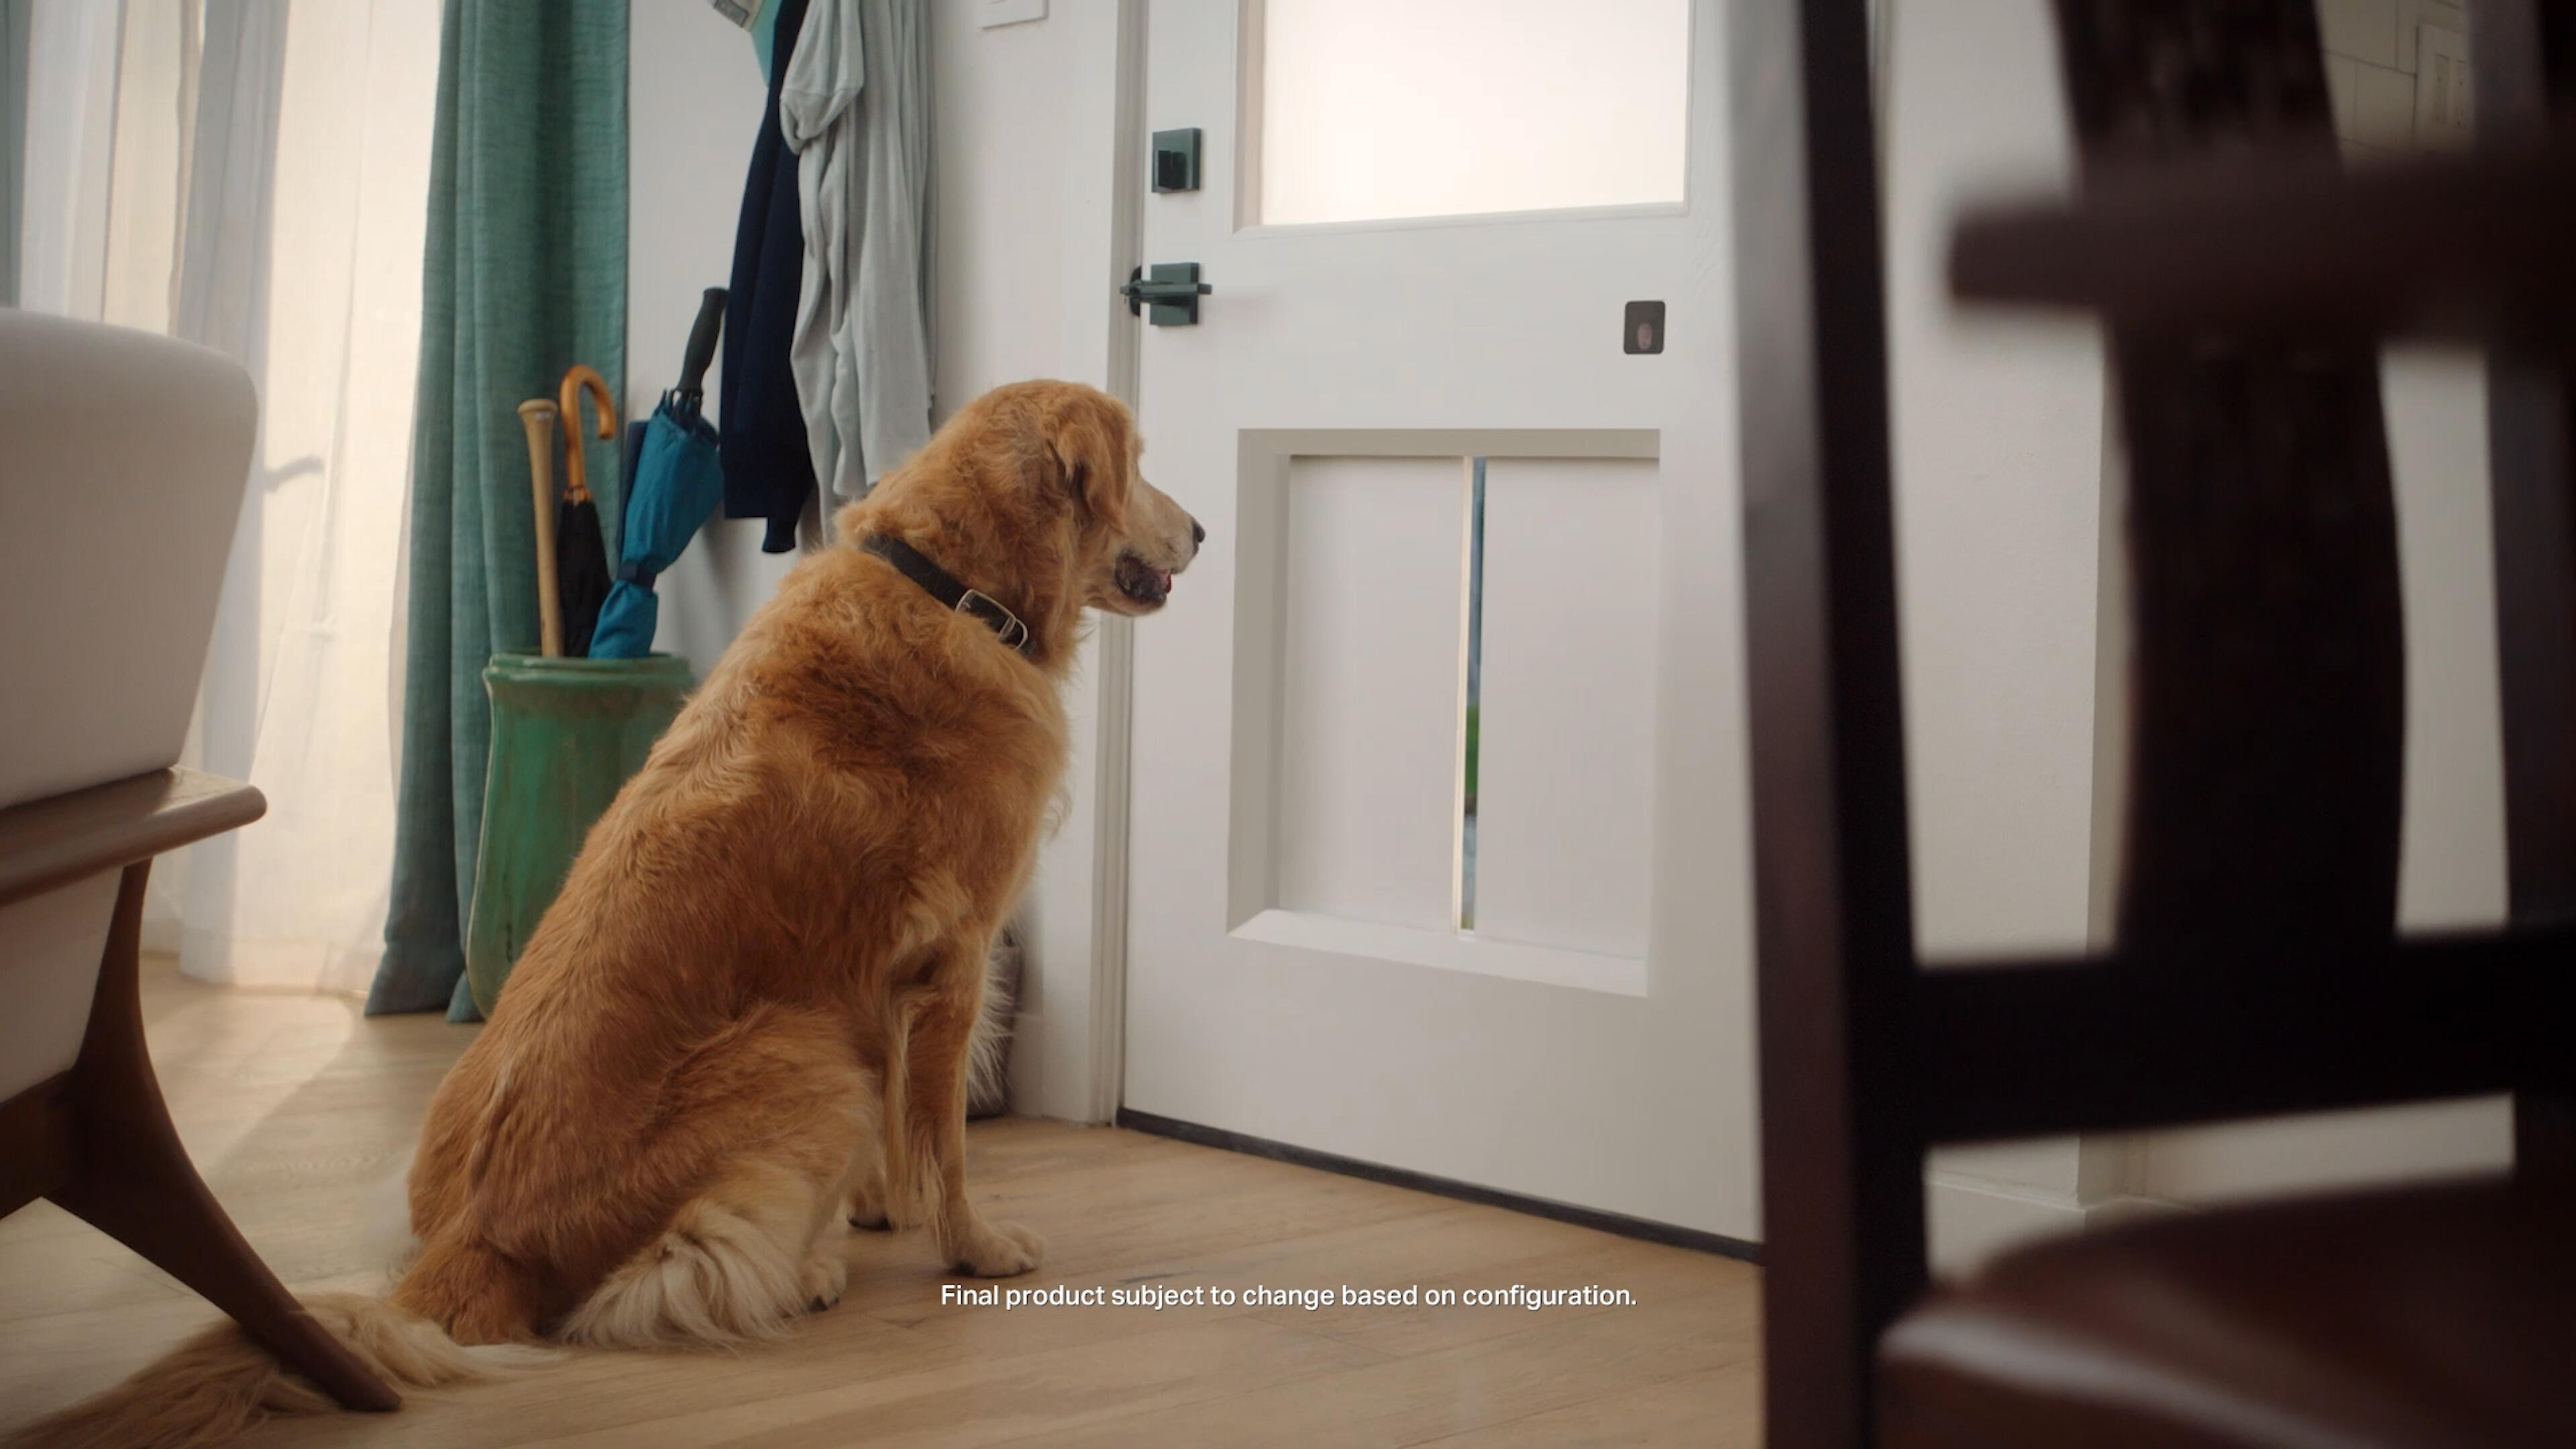 Video: MyQ's smart doggy door can open at your pup's command